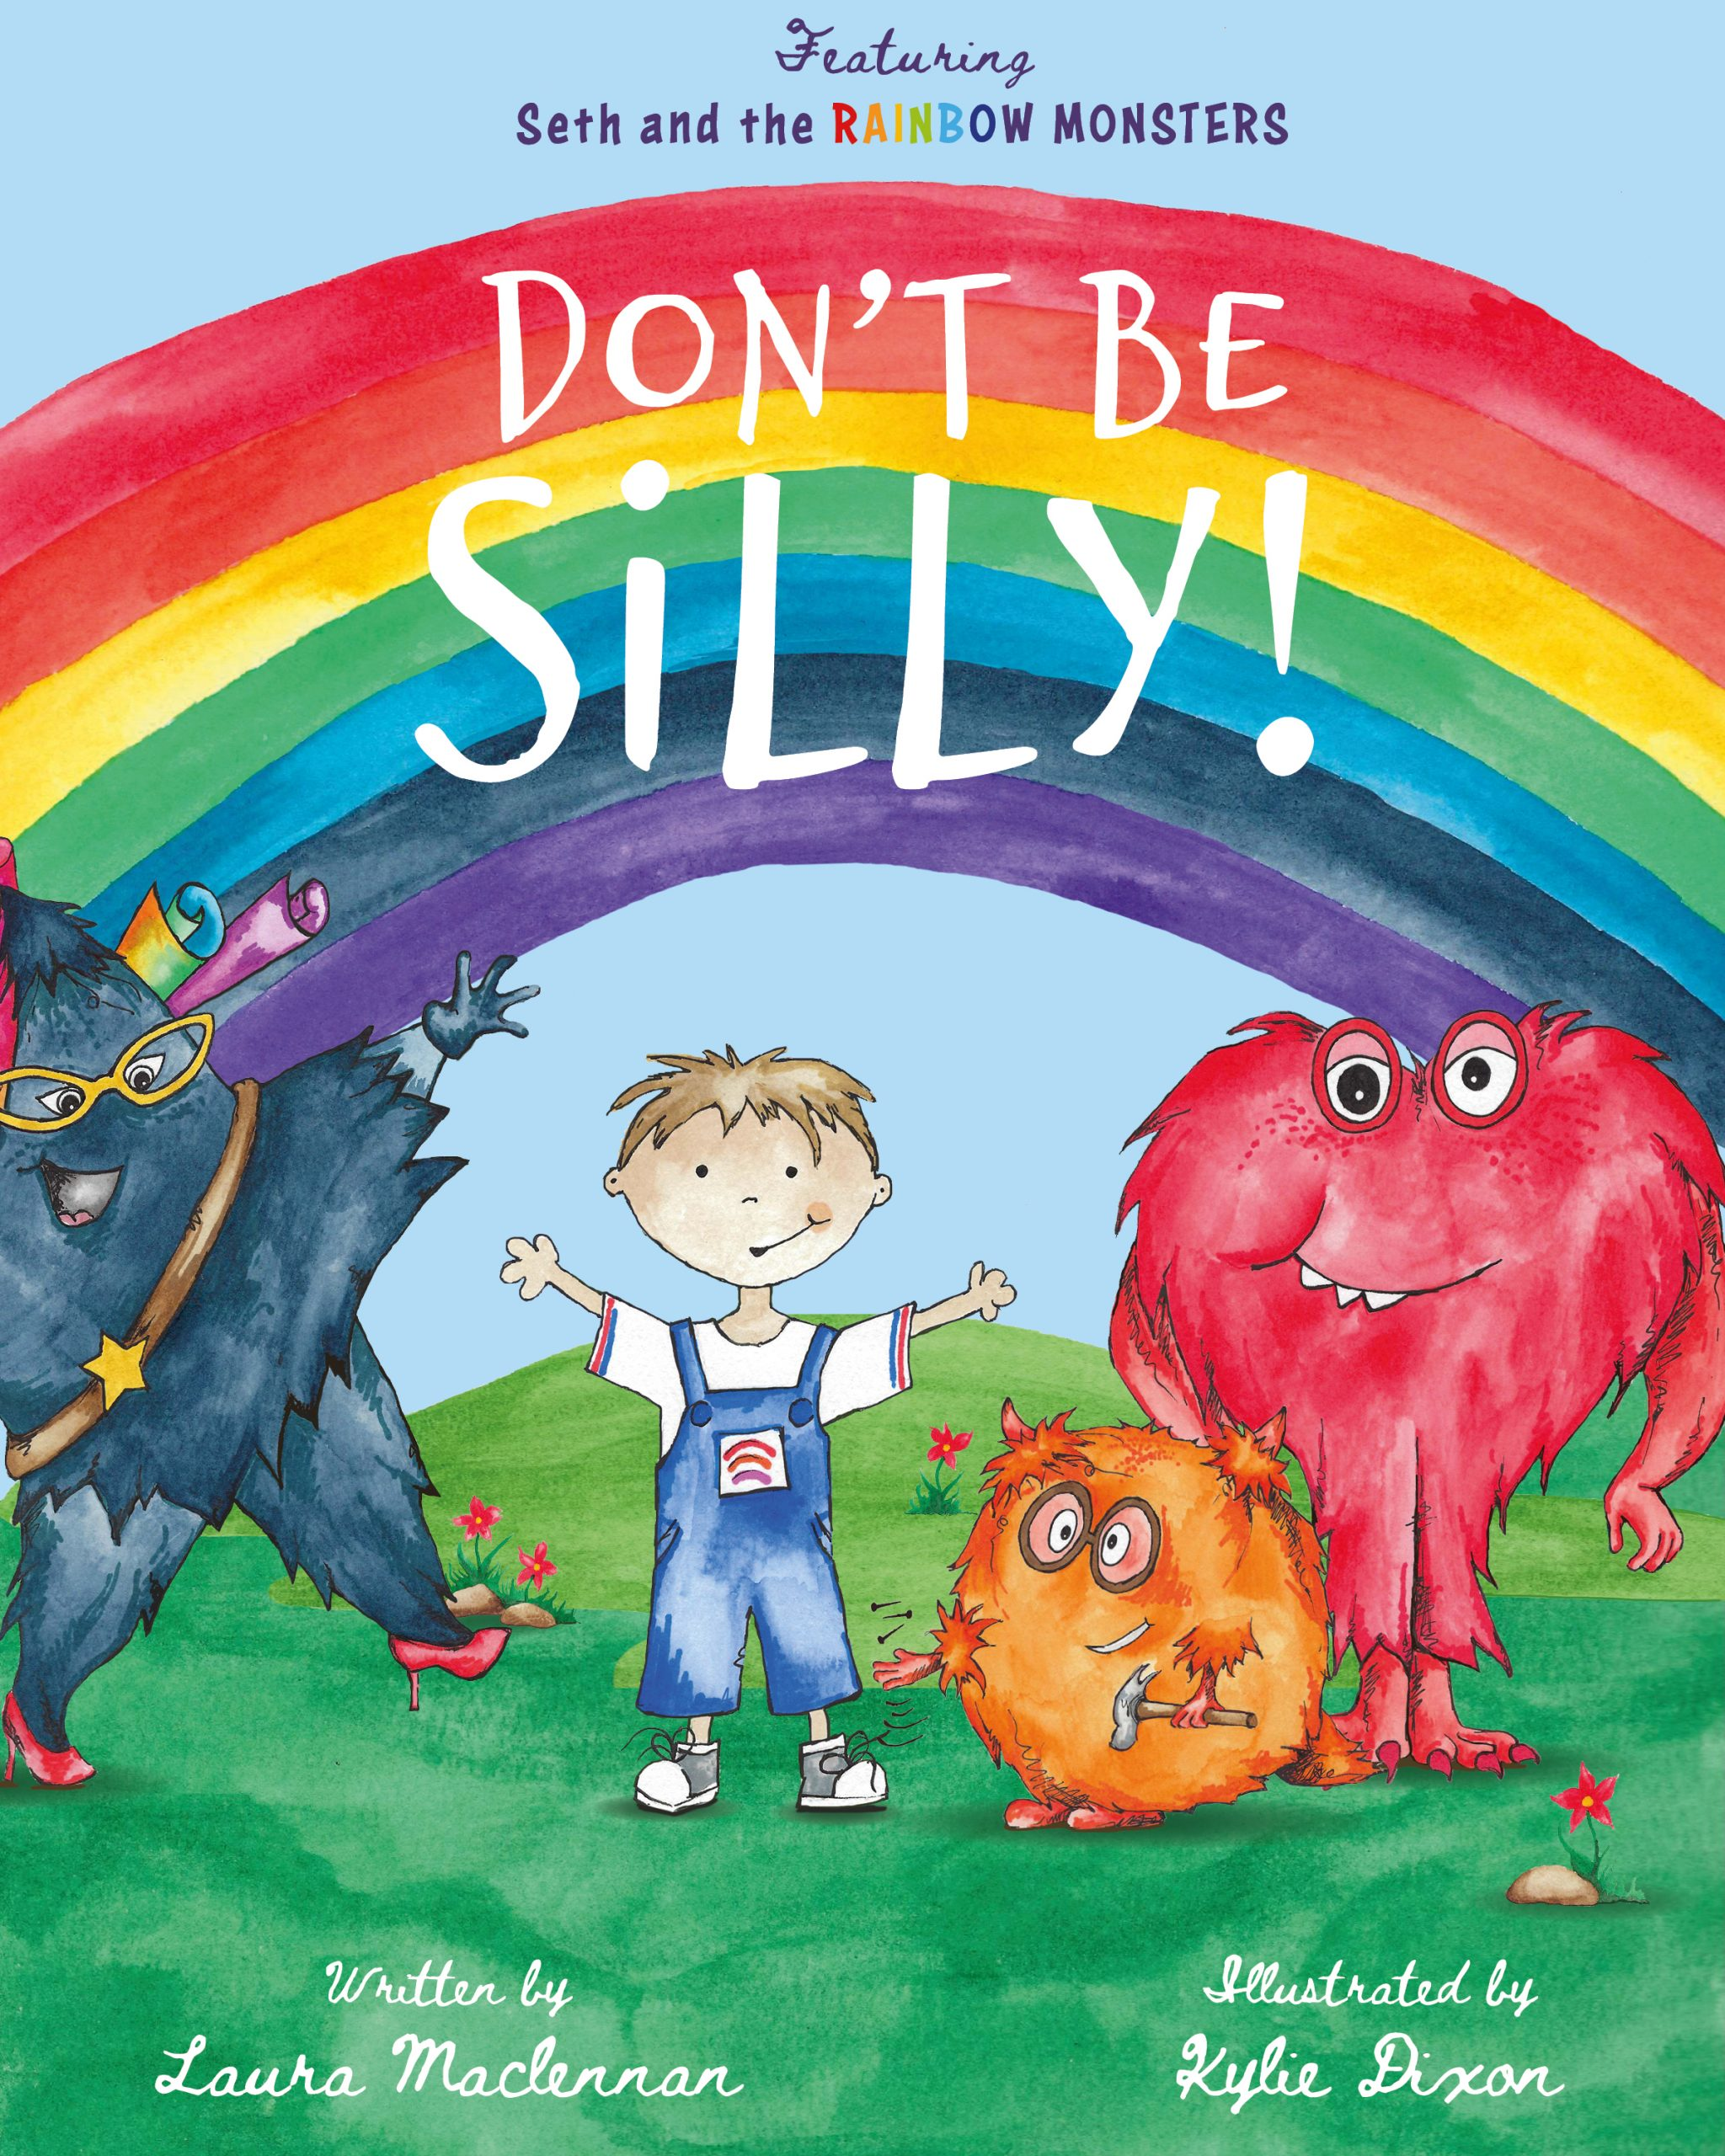 Don't be silly - Laura Maclennan